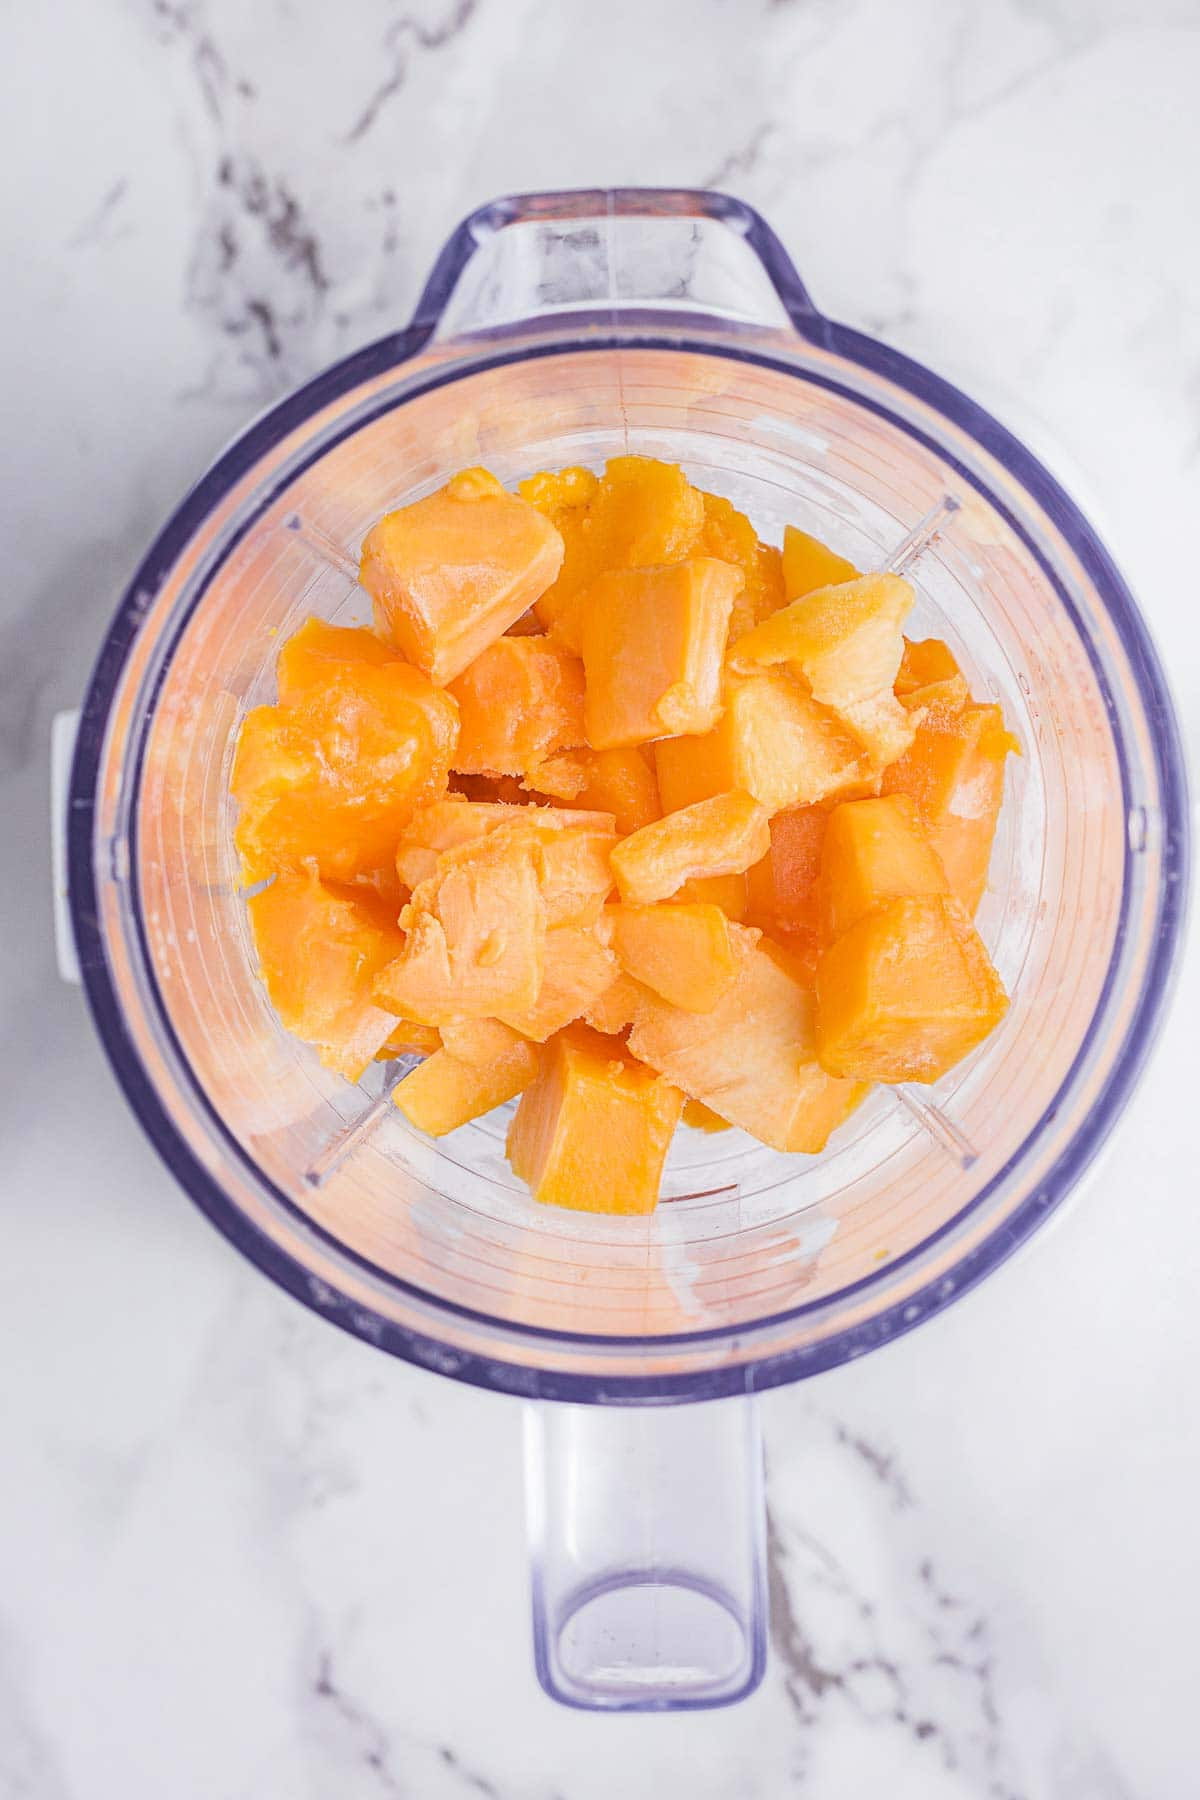 Diced mango added to a blender.